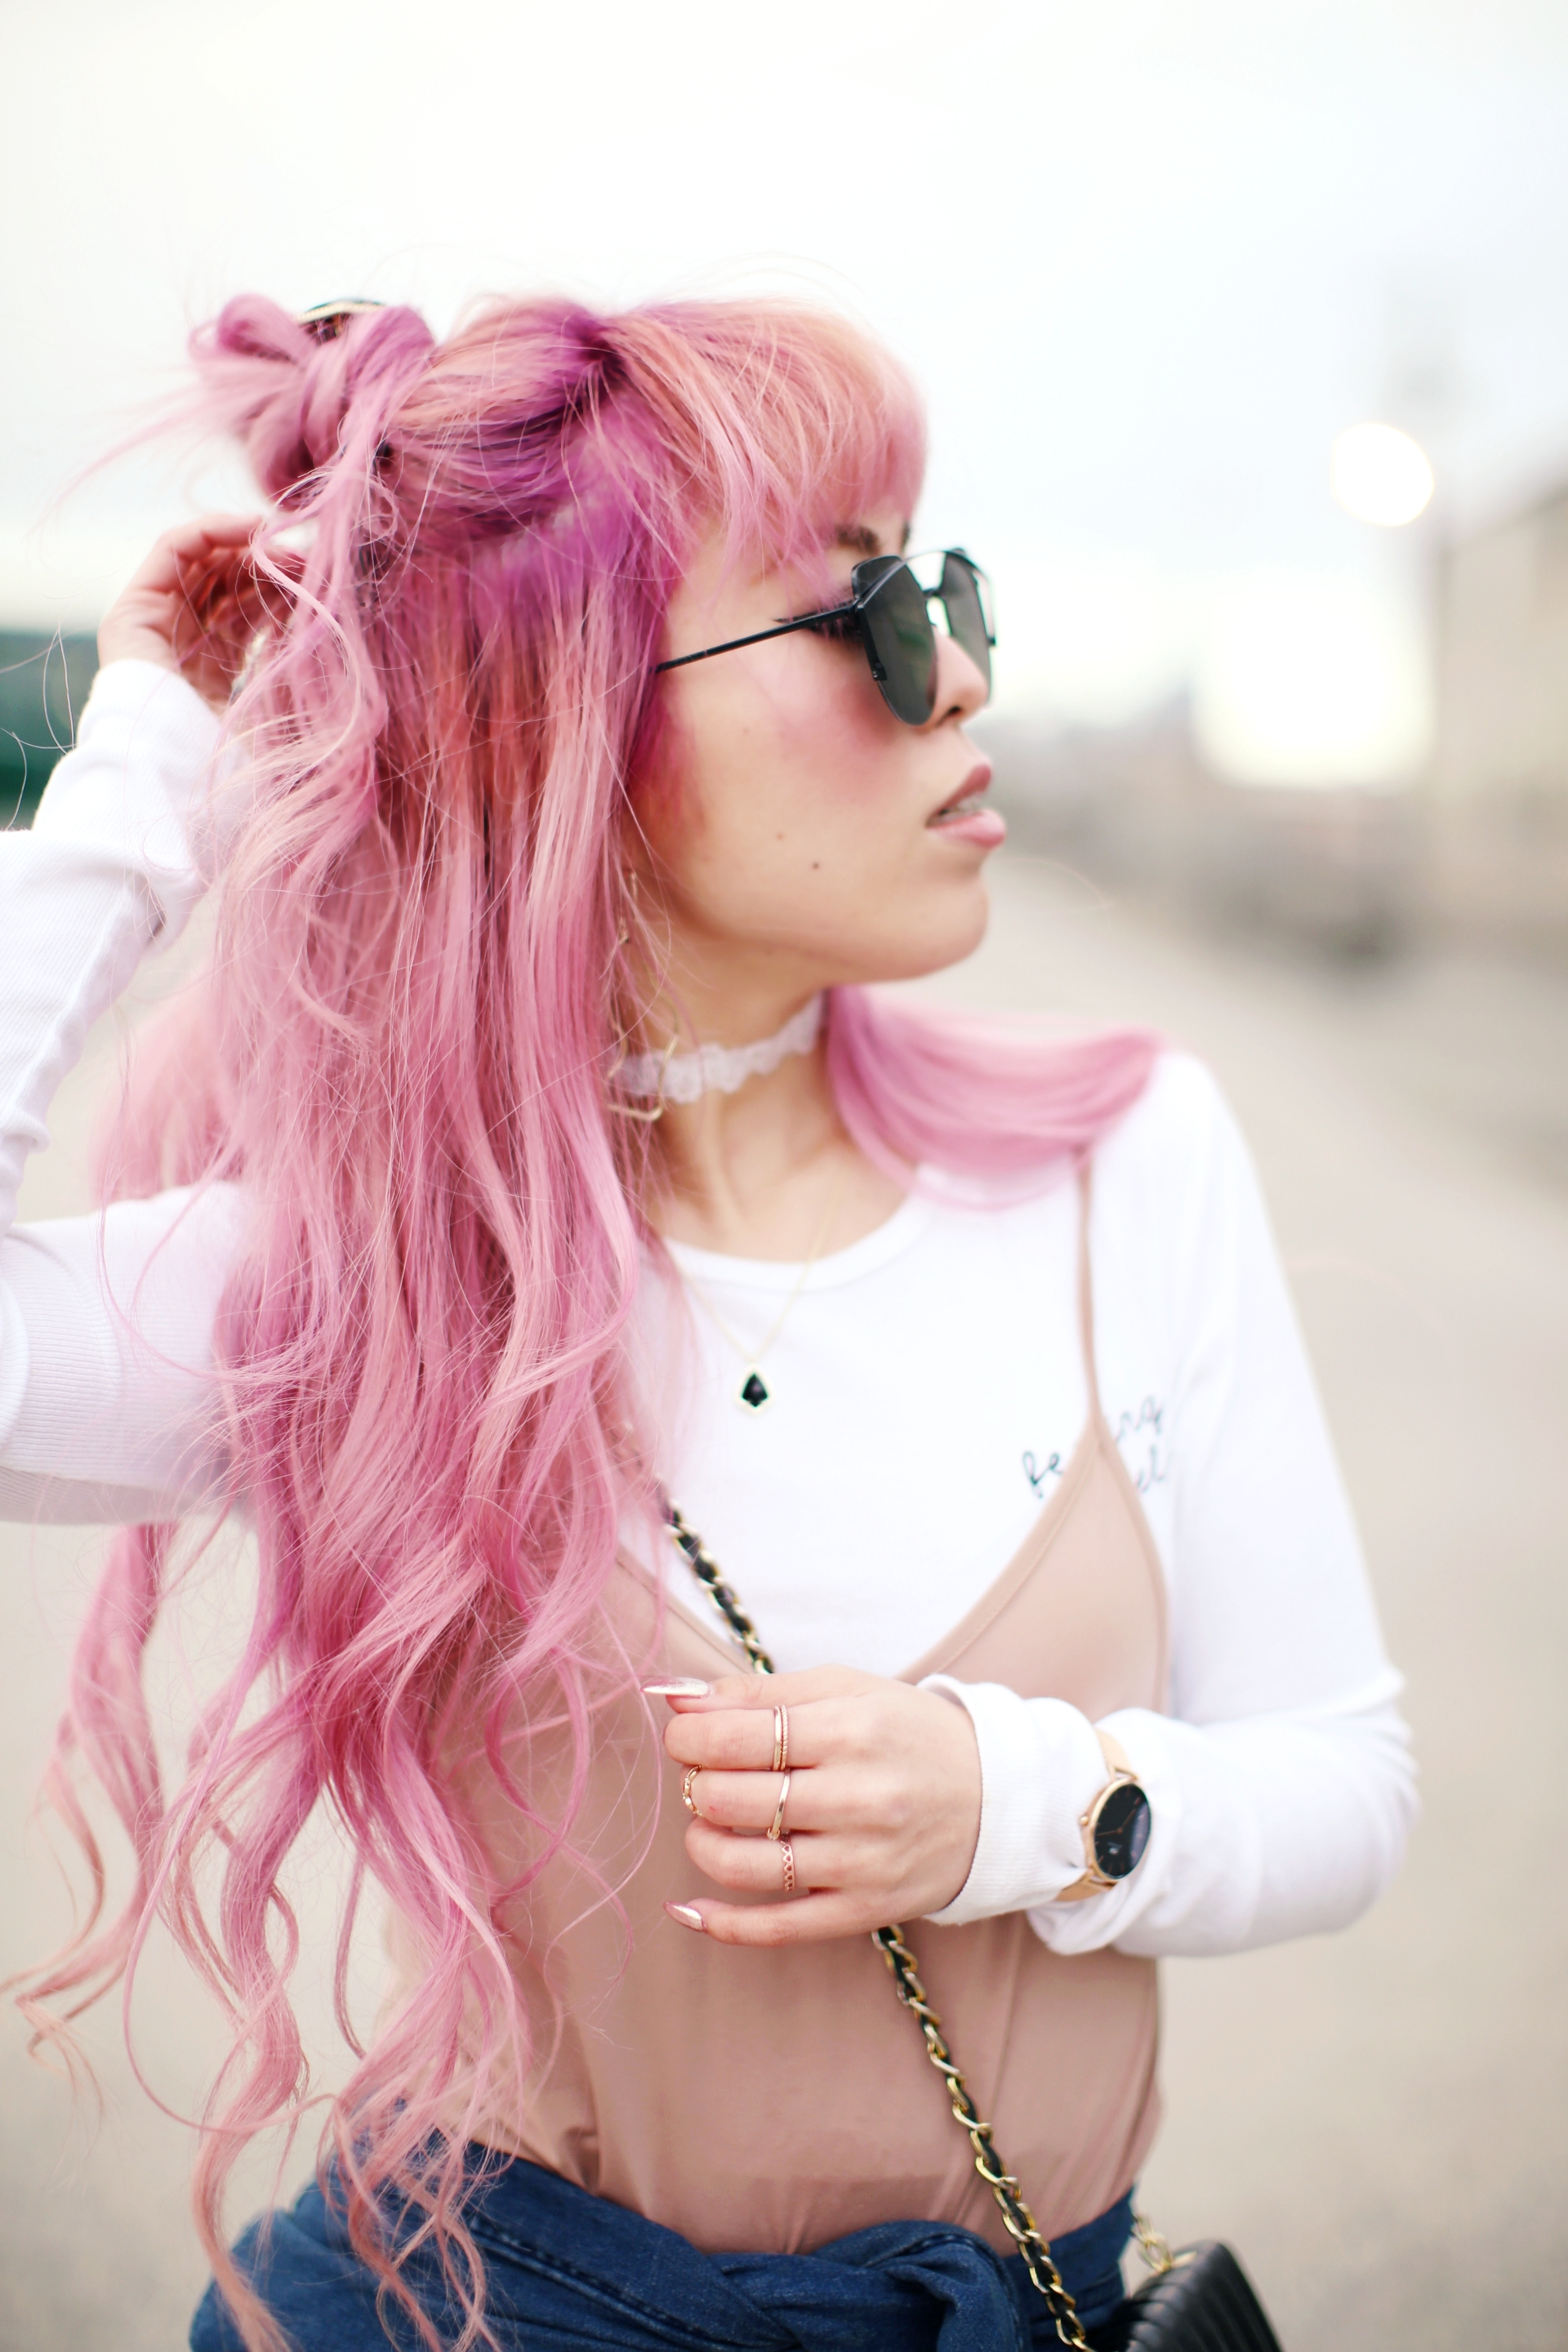 Forever 21 Long sleeve crop top_ZARA blush slip dress_Adidas Super Star sneakers_Vintage Chanel crossbodybag_Daniel Wellington Petite rose gold watch_Guess denim jacket_Aika's Love Closet_Seattle Fashion style blogger_Japanese_pink hair_Topknot soft curled-beachy wave hair